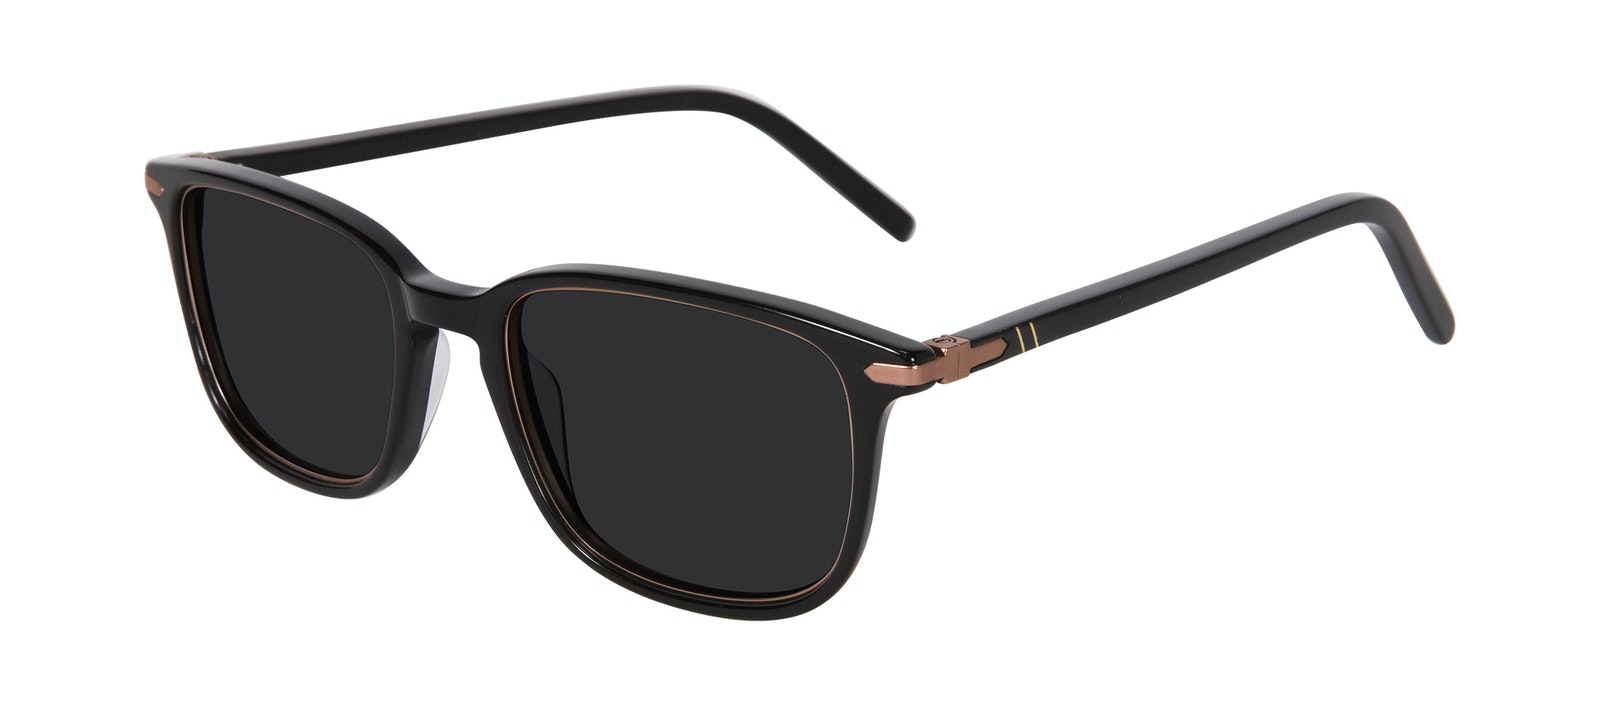 Affordable Fashion Glasses Square Sunglasses Men Sharp Lux Black Copper Tilt